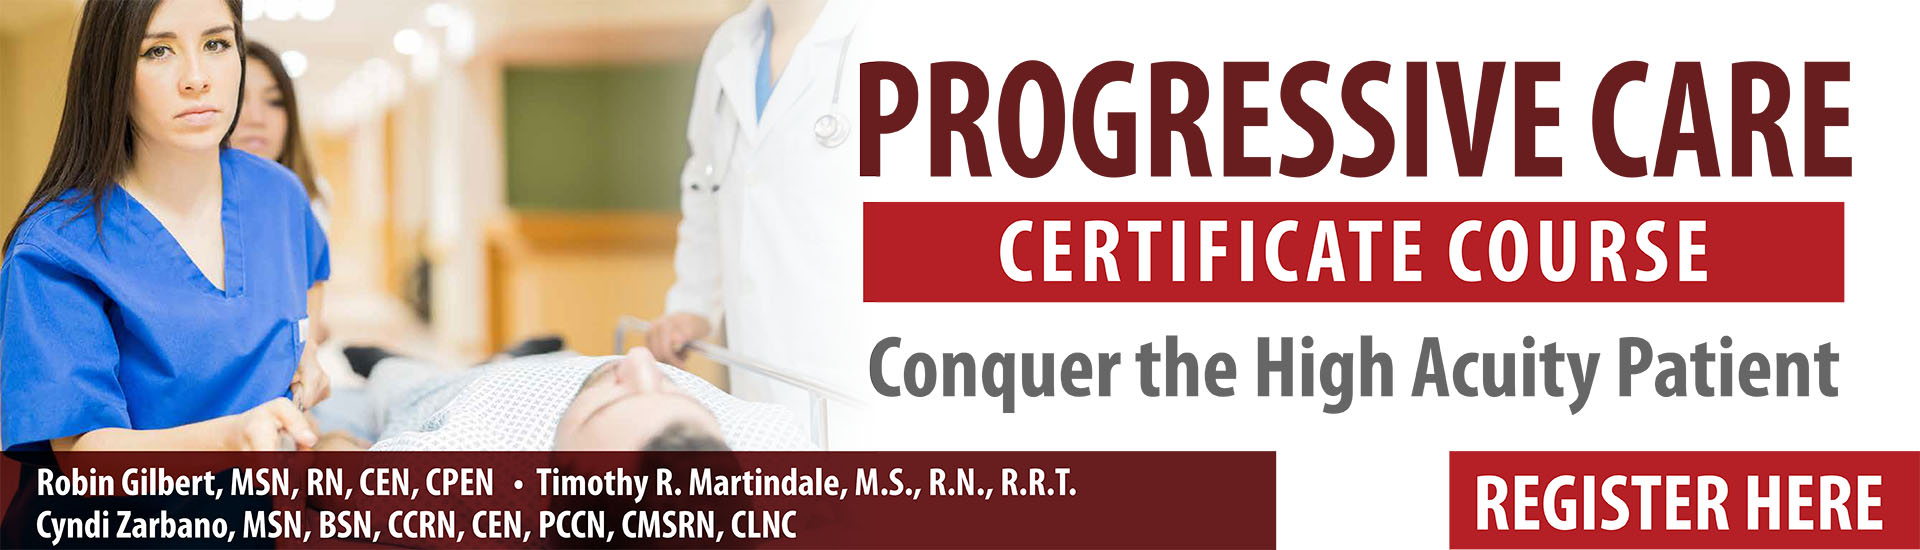 Progressive Care Certificate Course: Conquer the High Acuity Patient